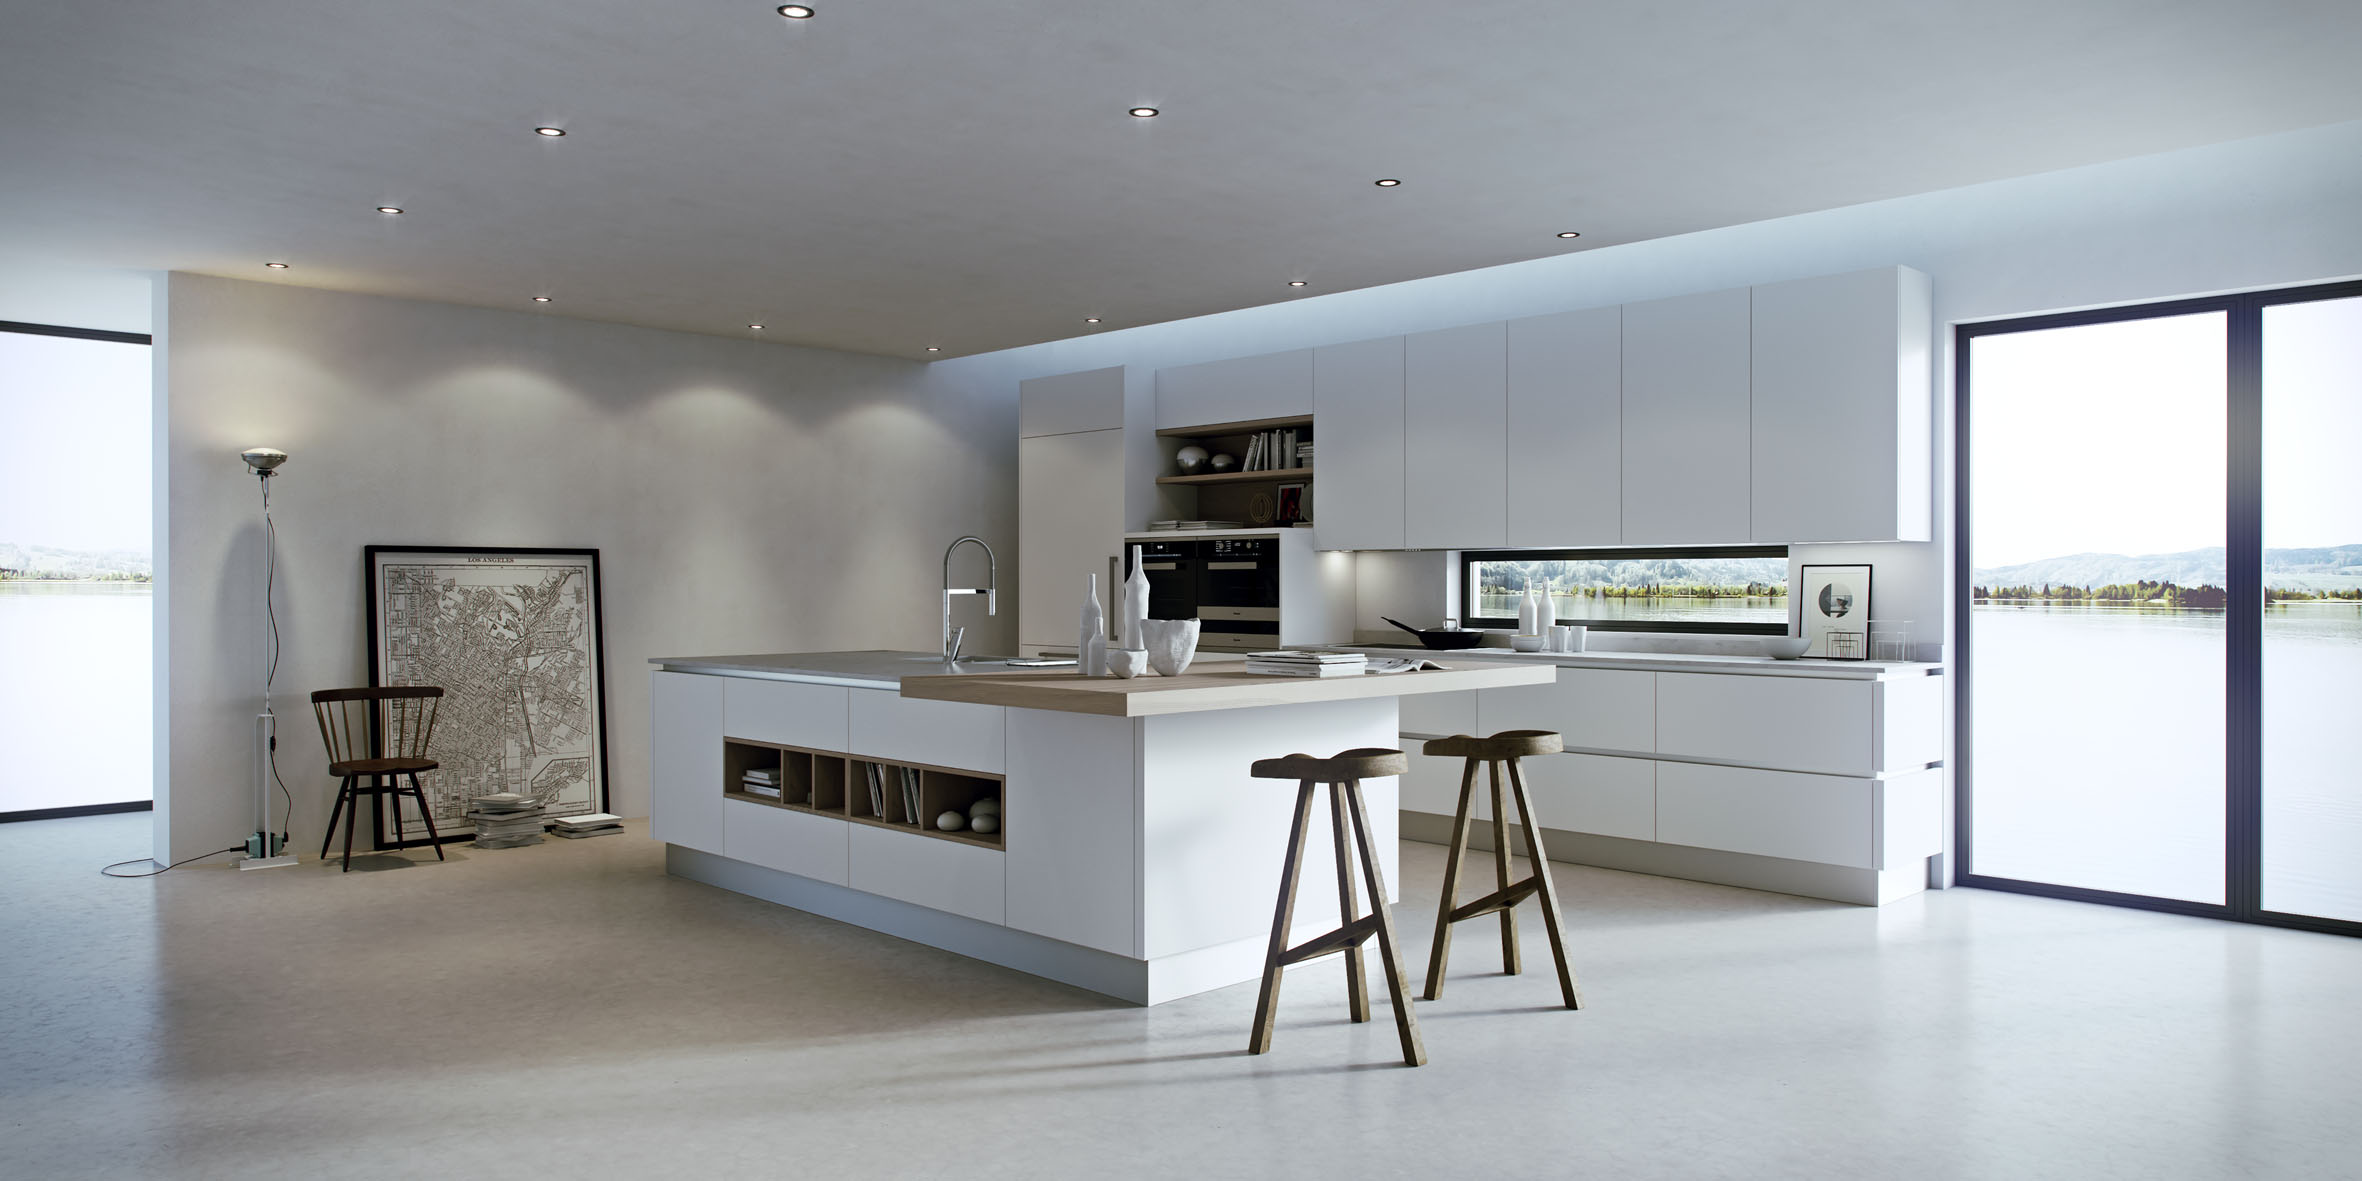 Ainoa by record cucine srl archello for Luminarias para cocina